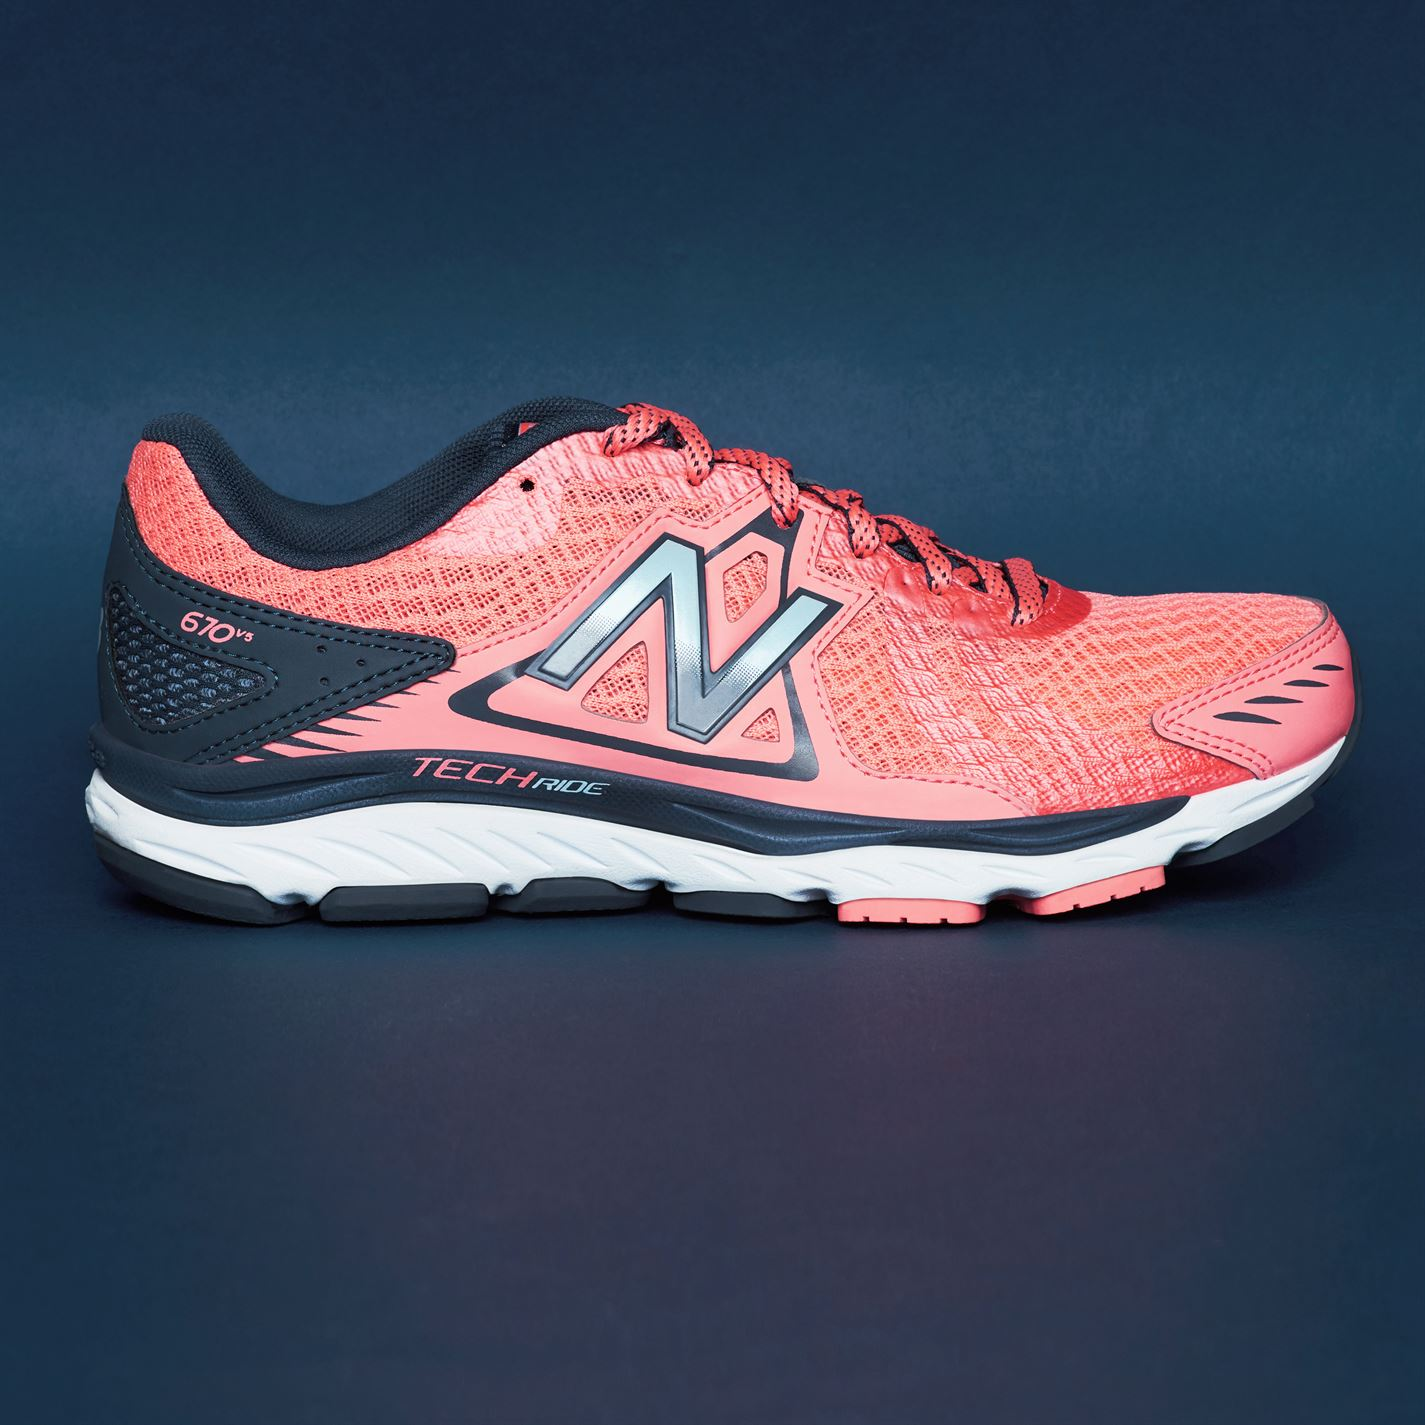 competitive price dda70 592f0 Tenisice New Balance 670 v5 Ladies Running Shoes Roze